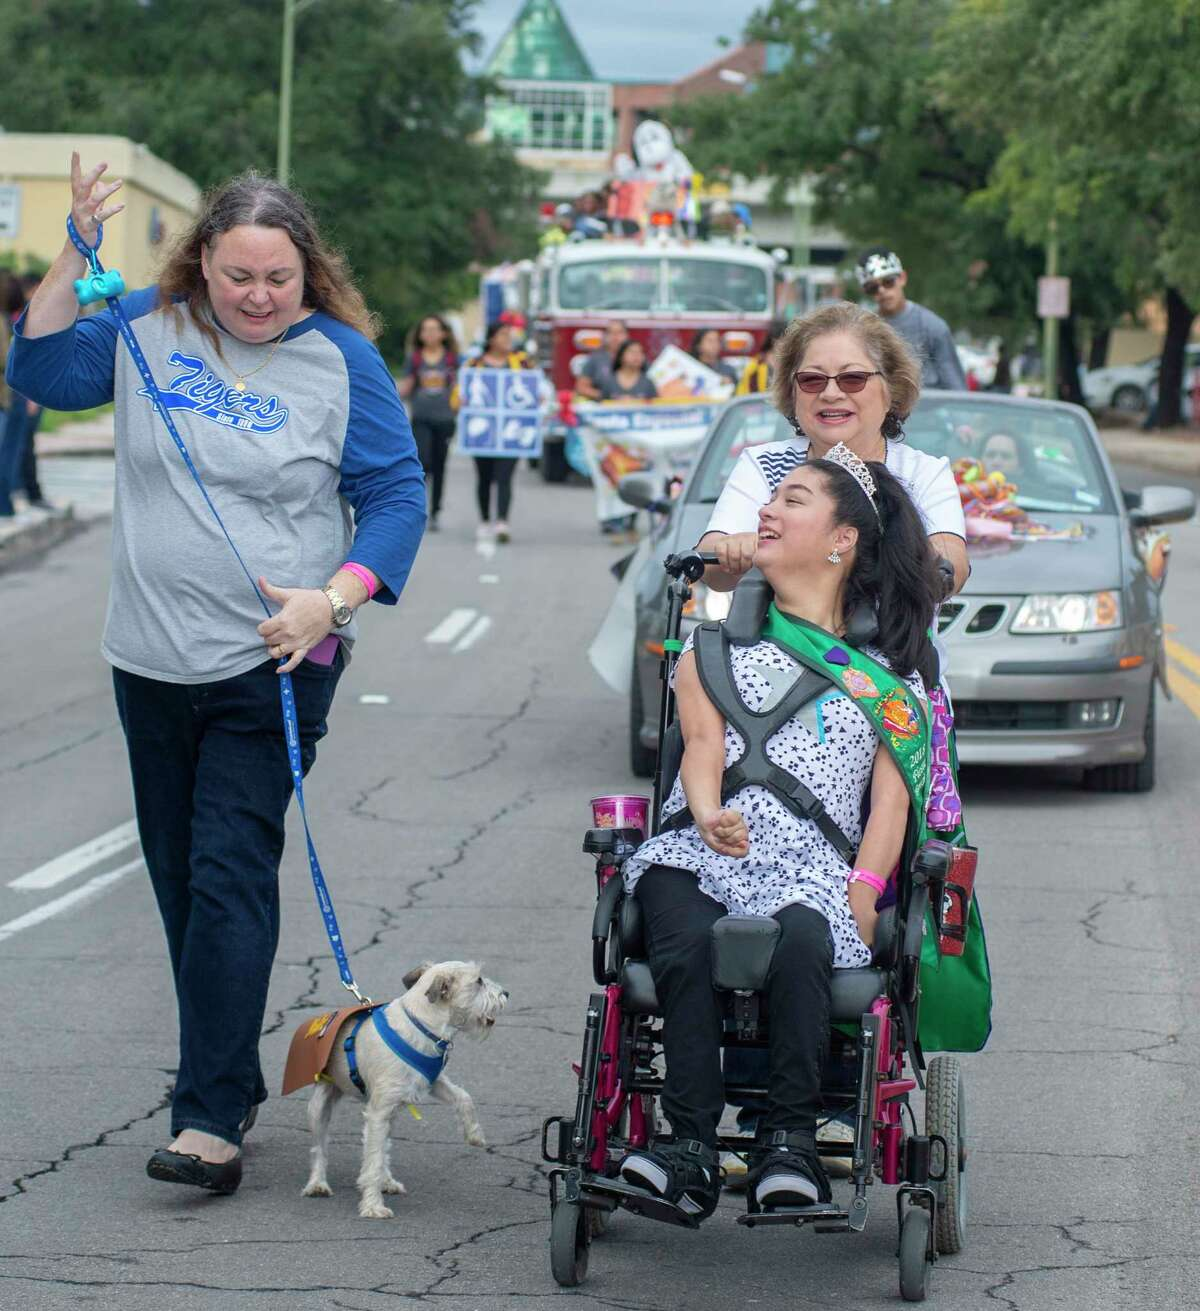 2018 Fiesta Especial Queen Vanesa Serana, 21, and Gypsy the dog participate in the inaugural abilitySTRONG Parade on Saturday, October 20, 2018.